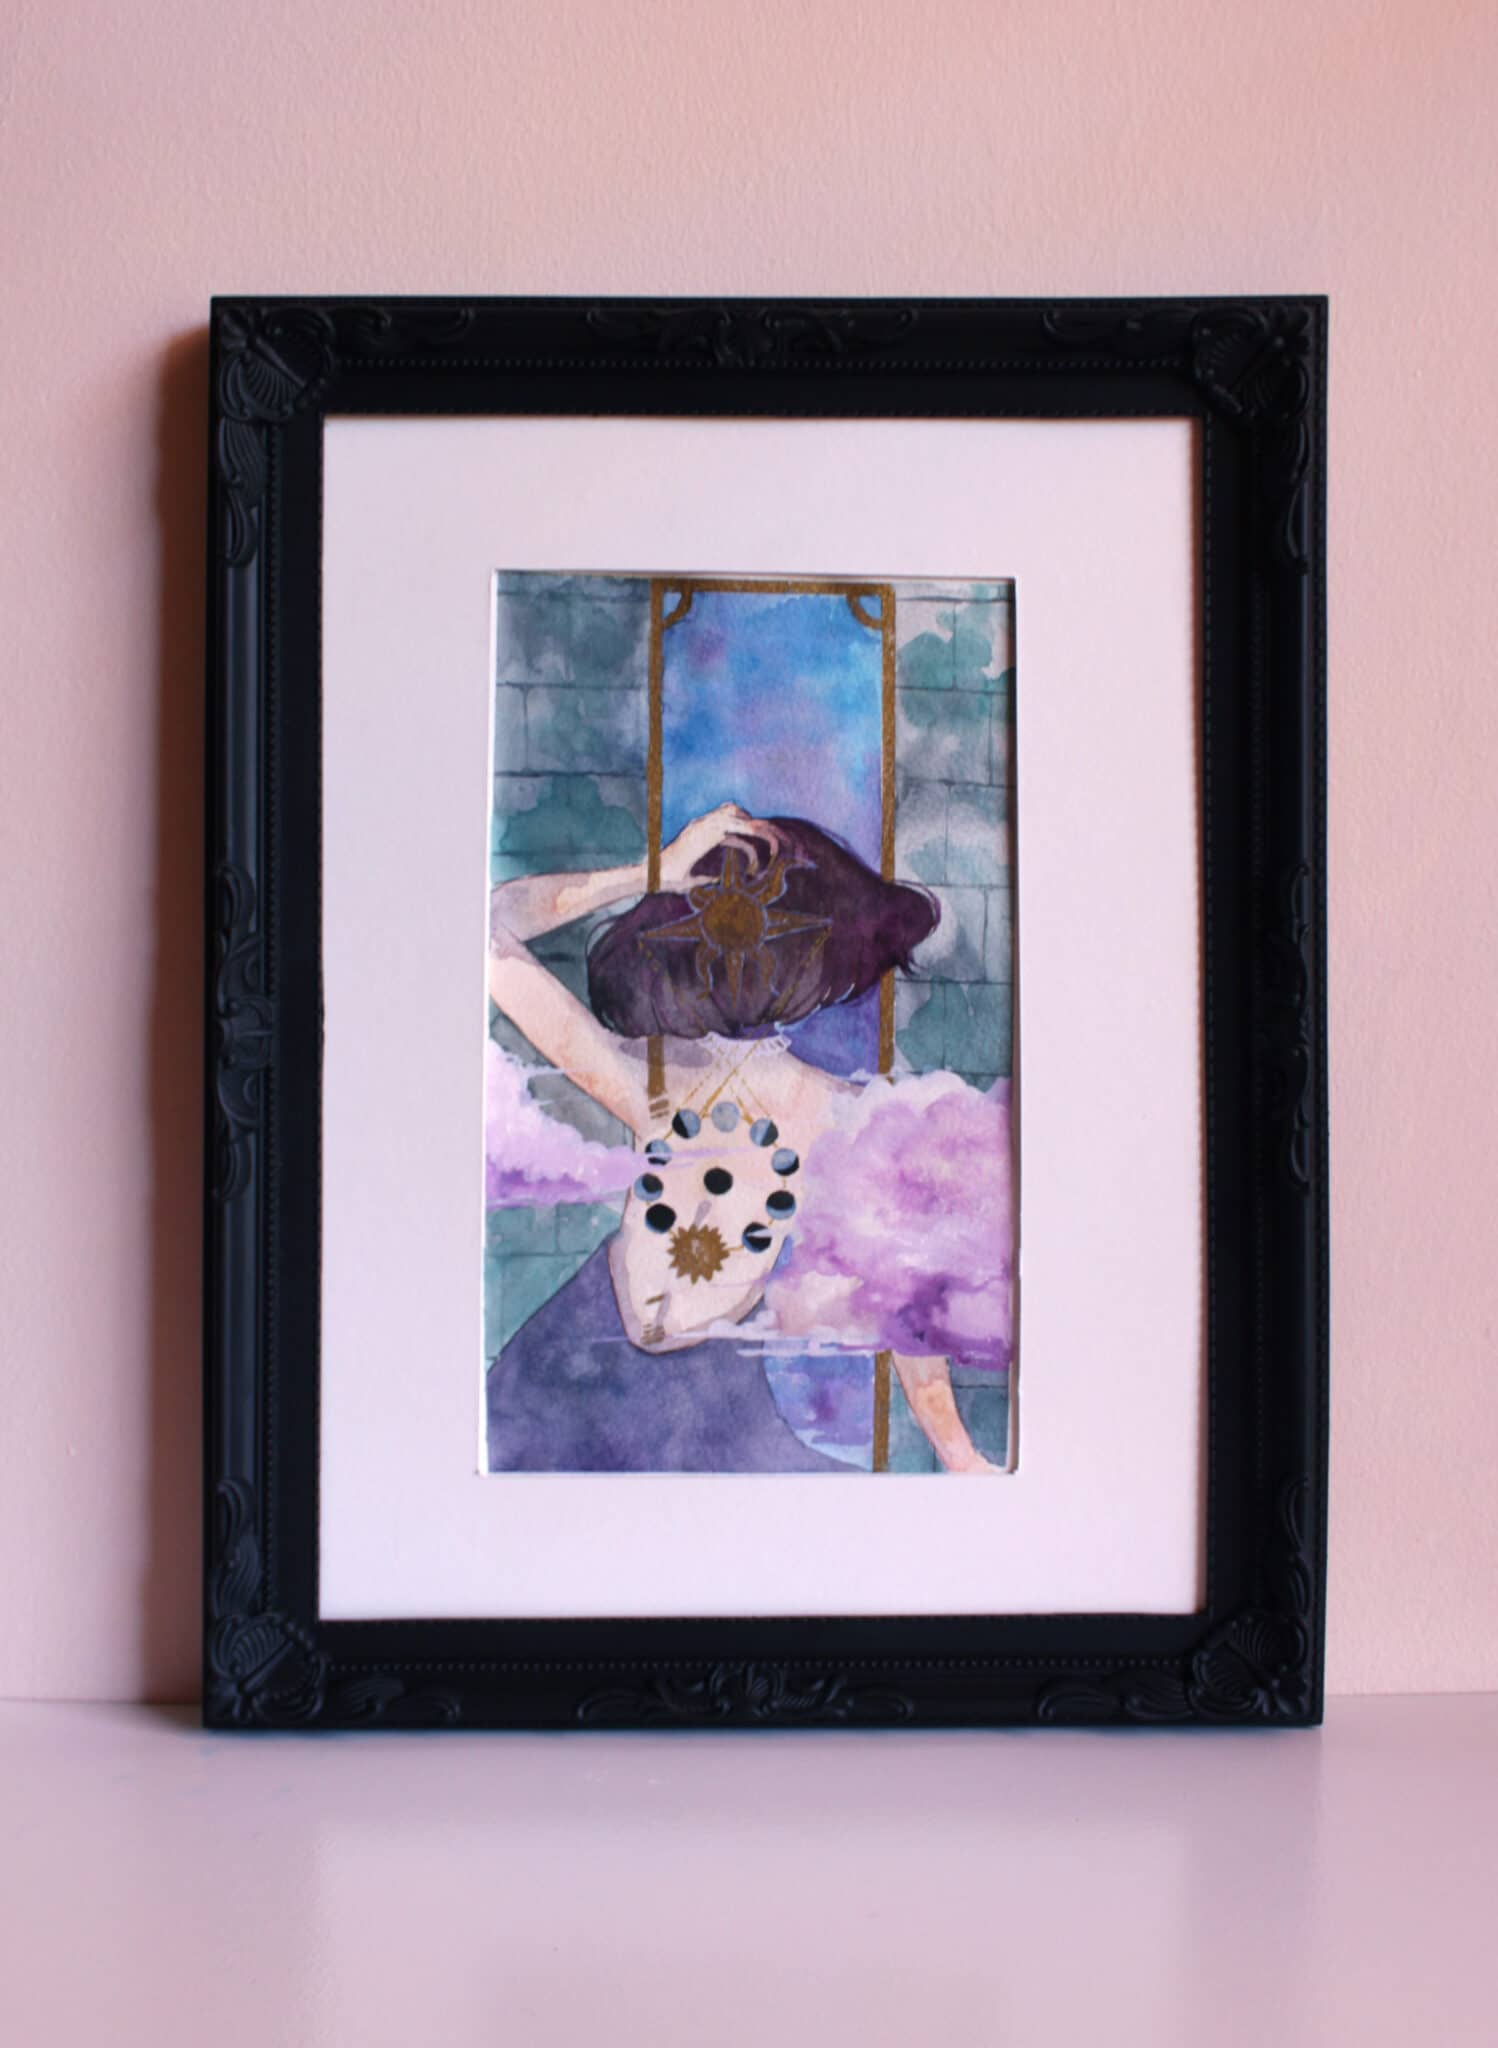 Alchemical Girls I – Celes By Coraline Caroline (Almost Solo Exhibition)